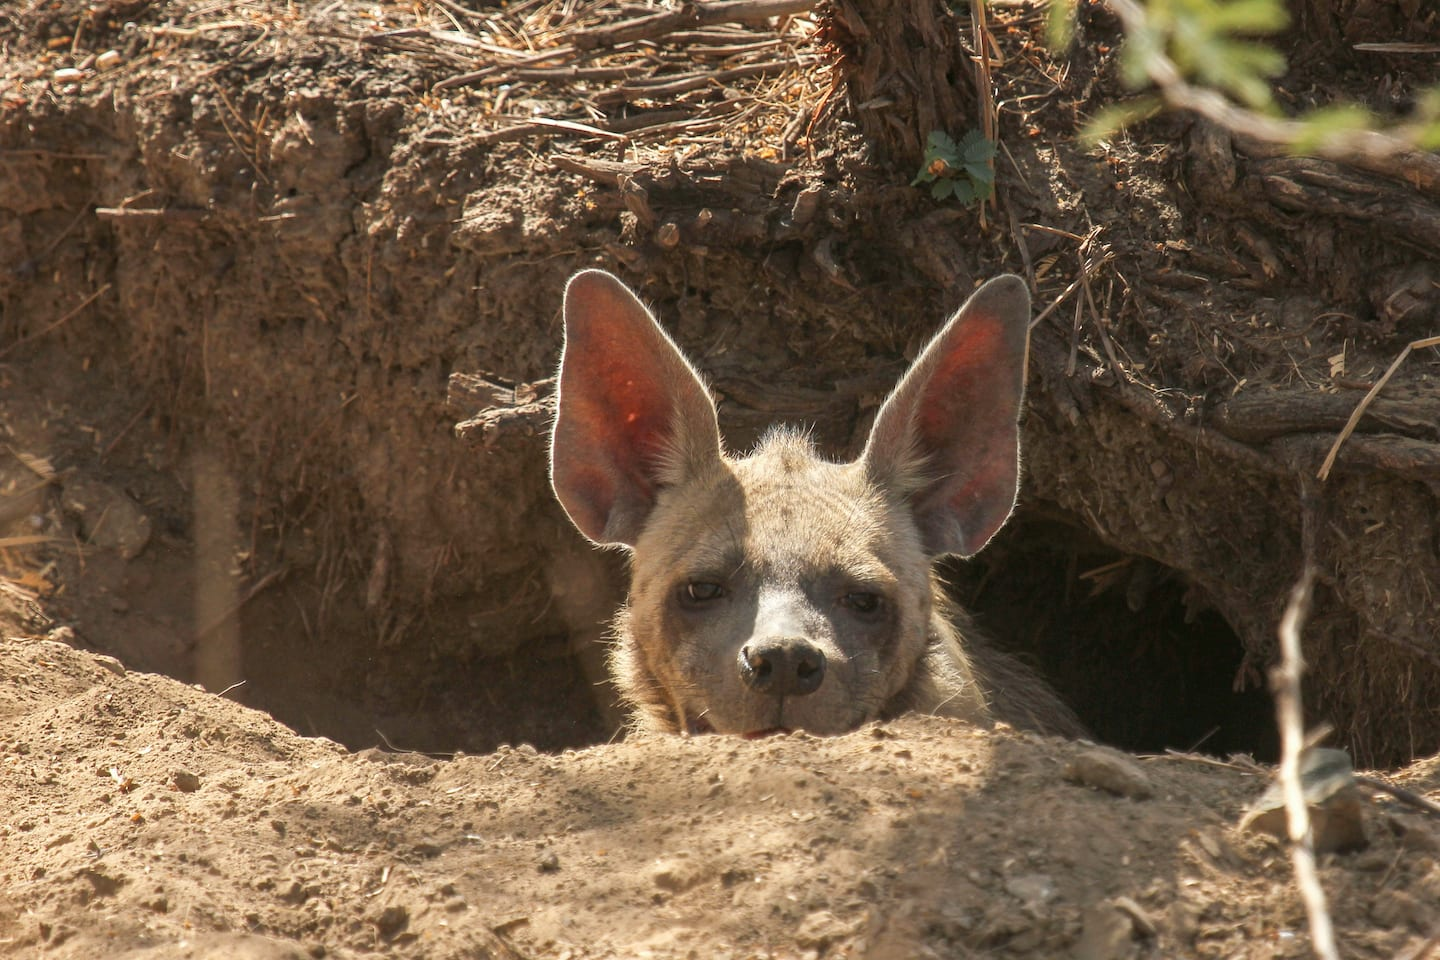 Indian striped hyena peeping out from the security of its den.